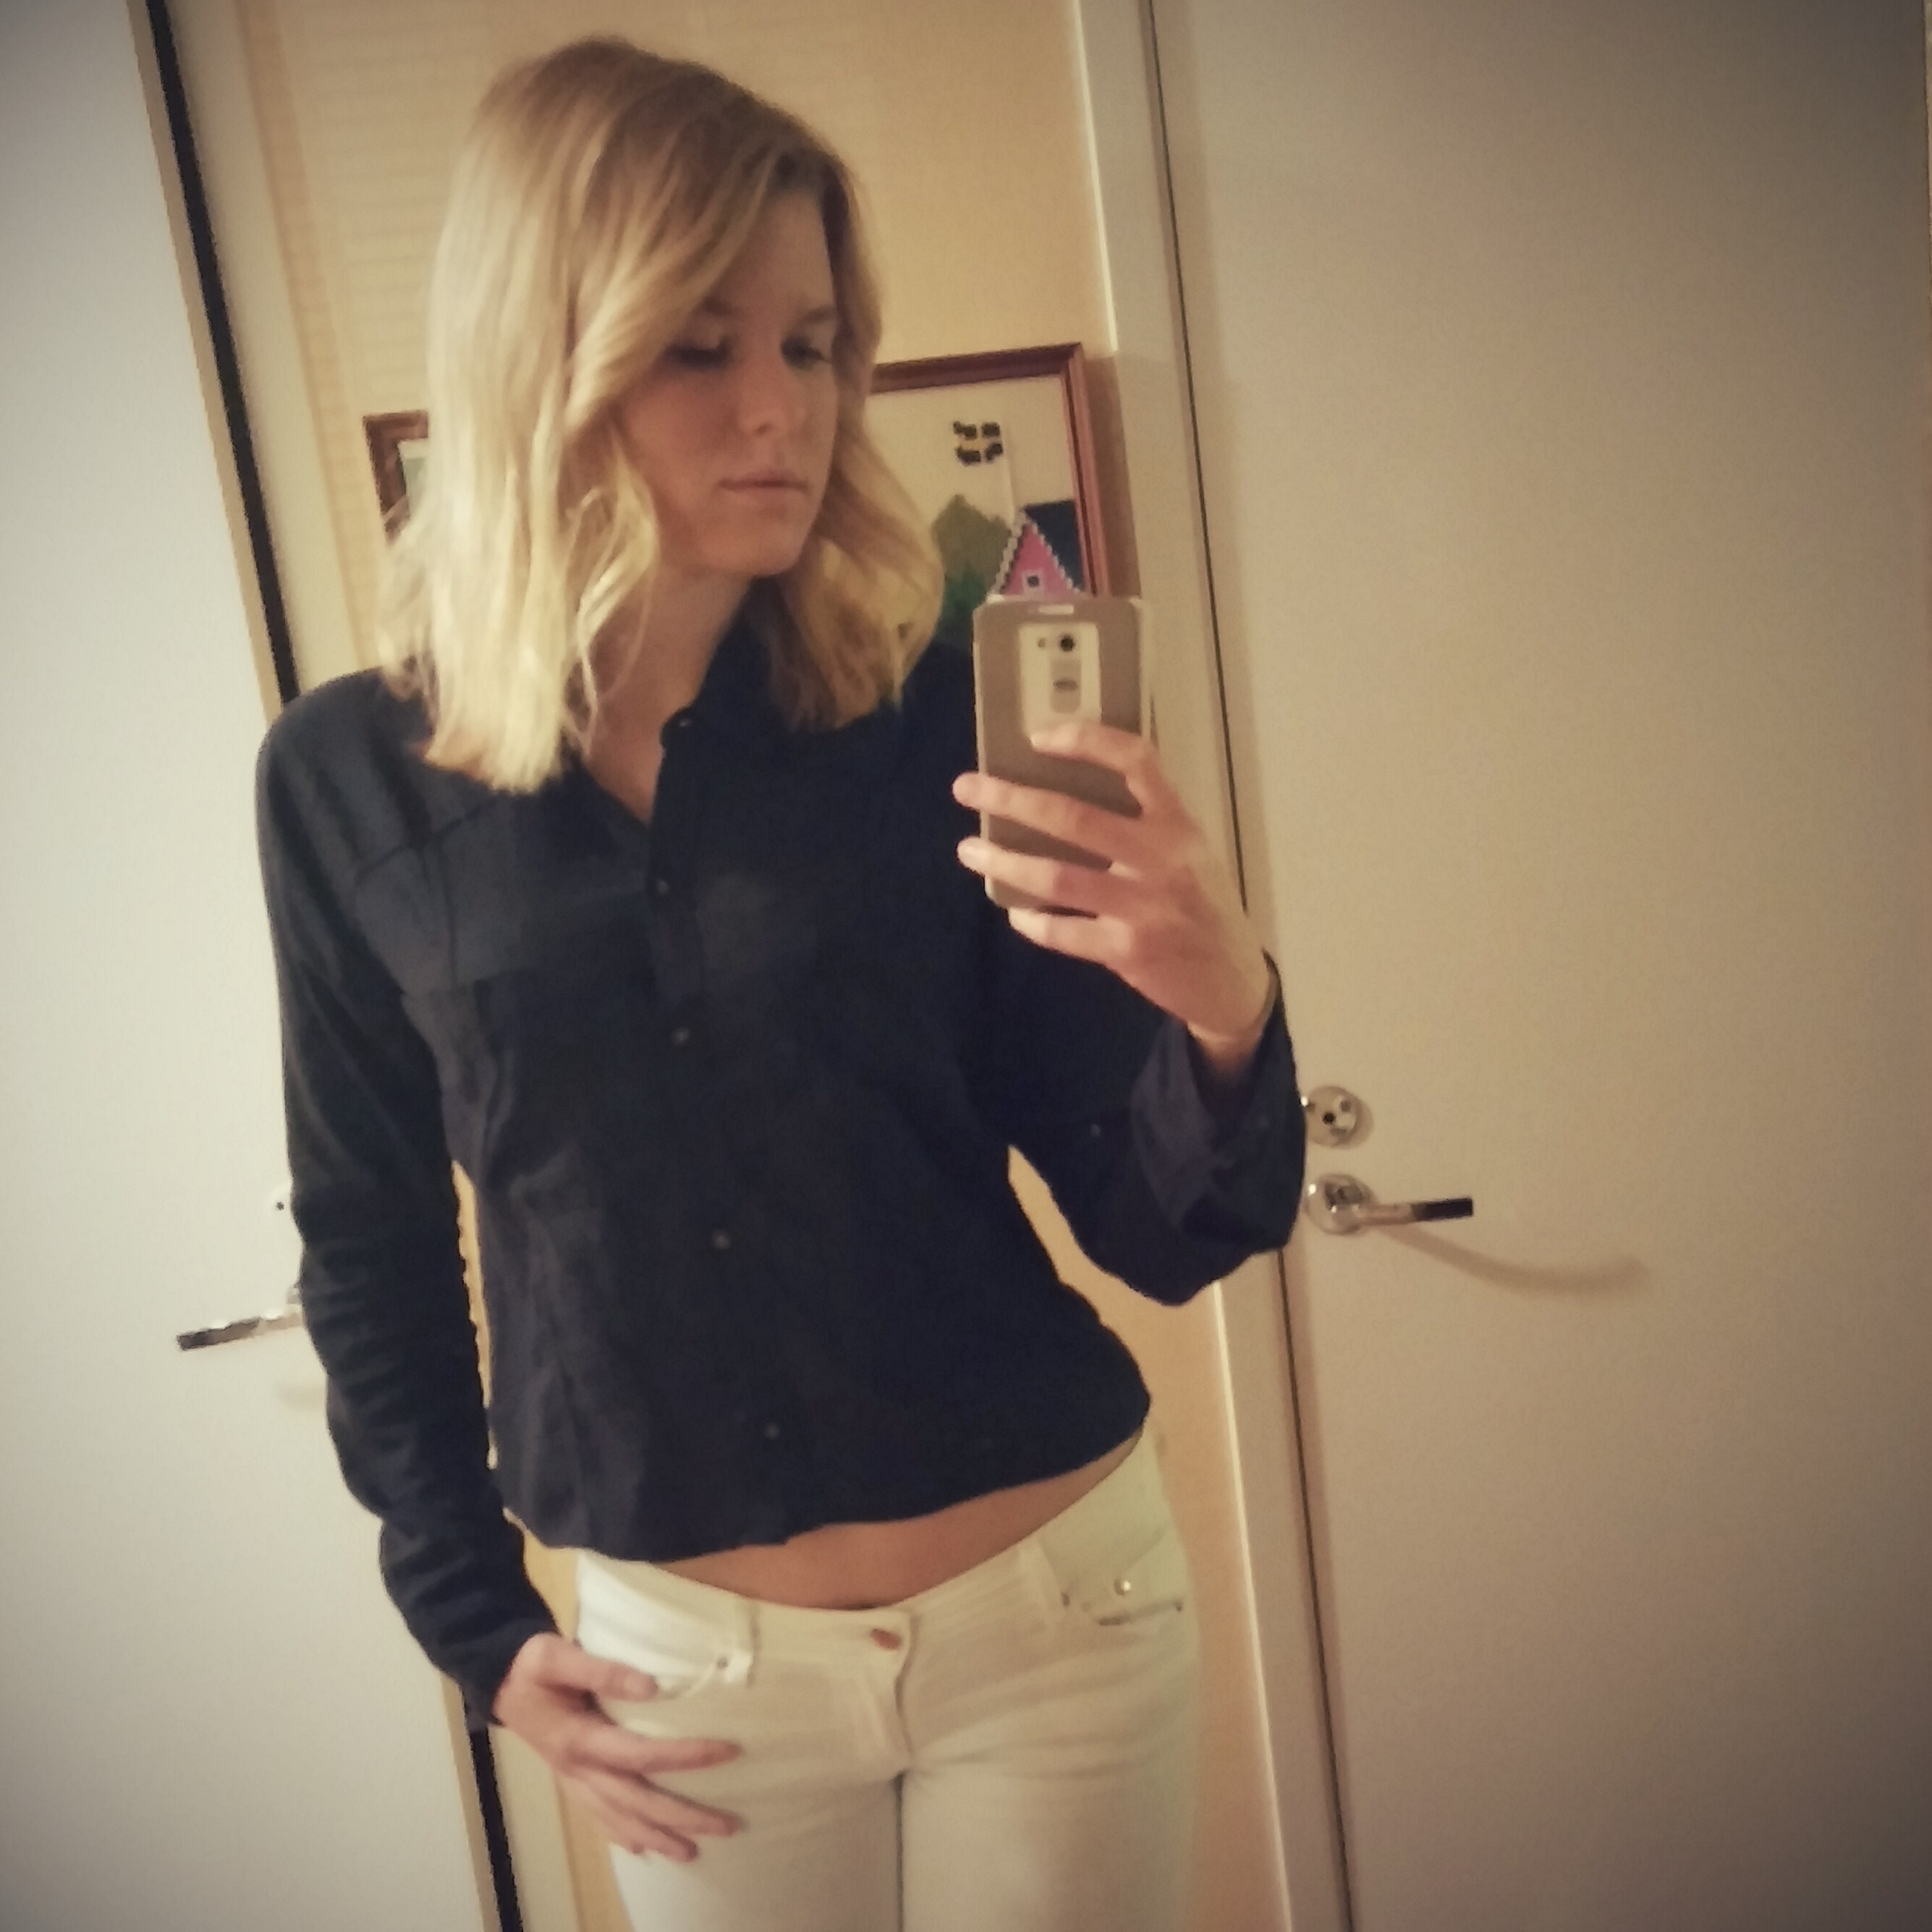 mogna escorter sex med dildo